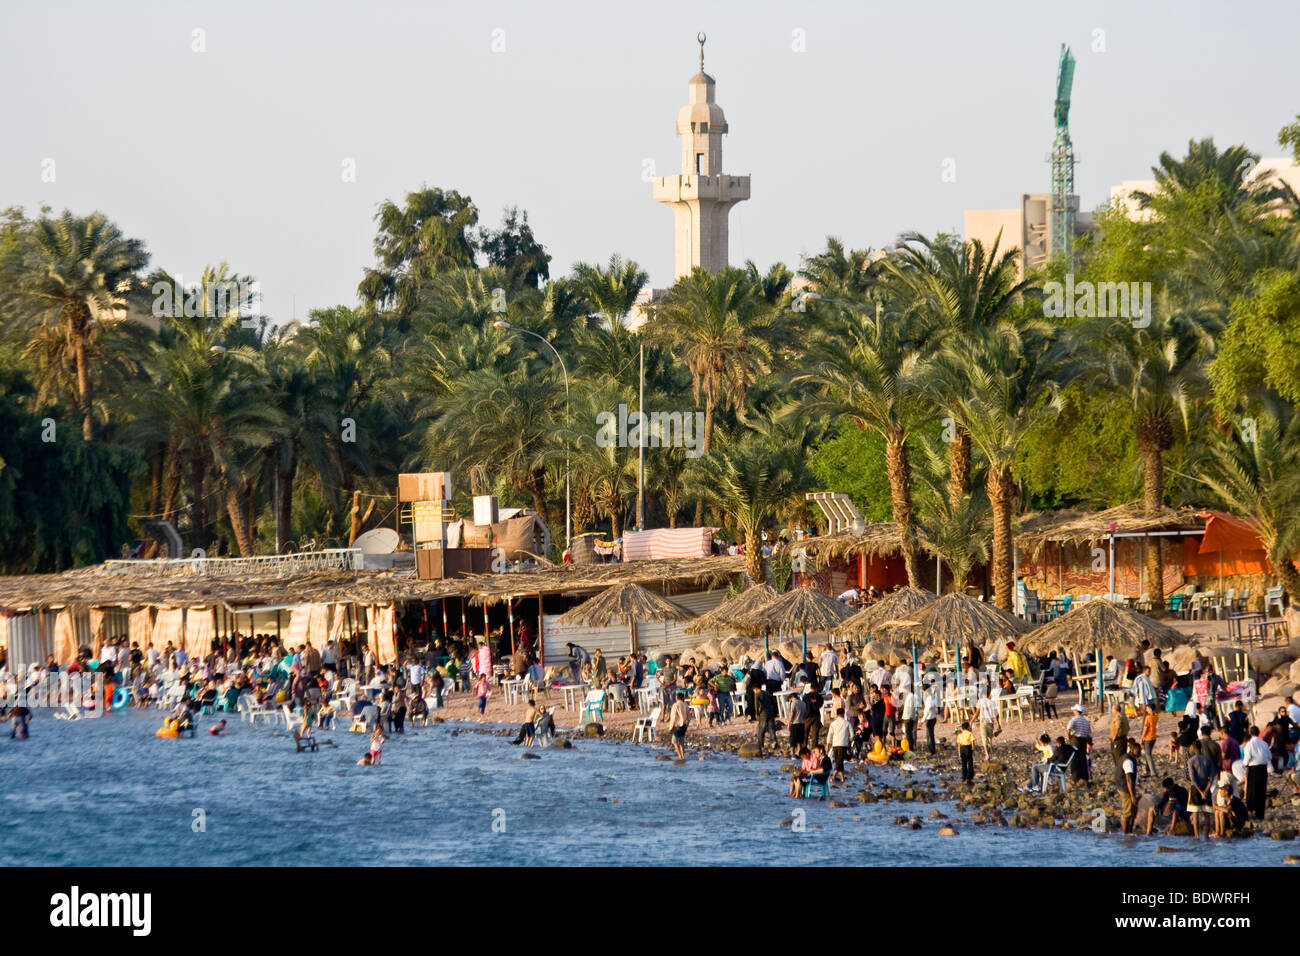 Beach in Aqaba Jordan - Stock Image